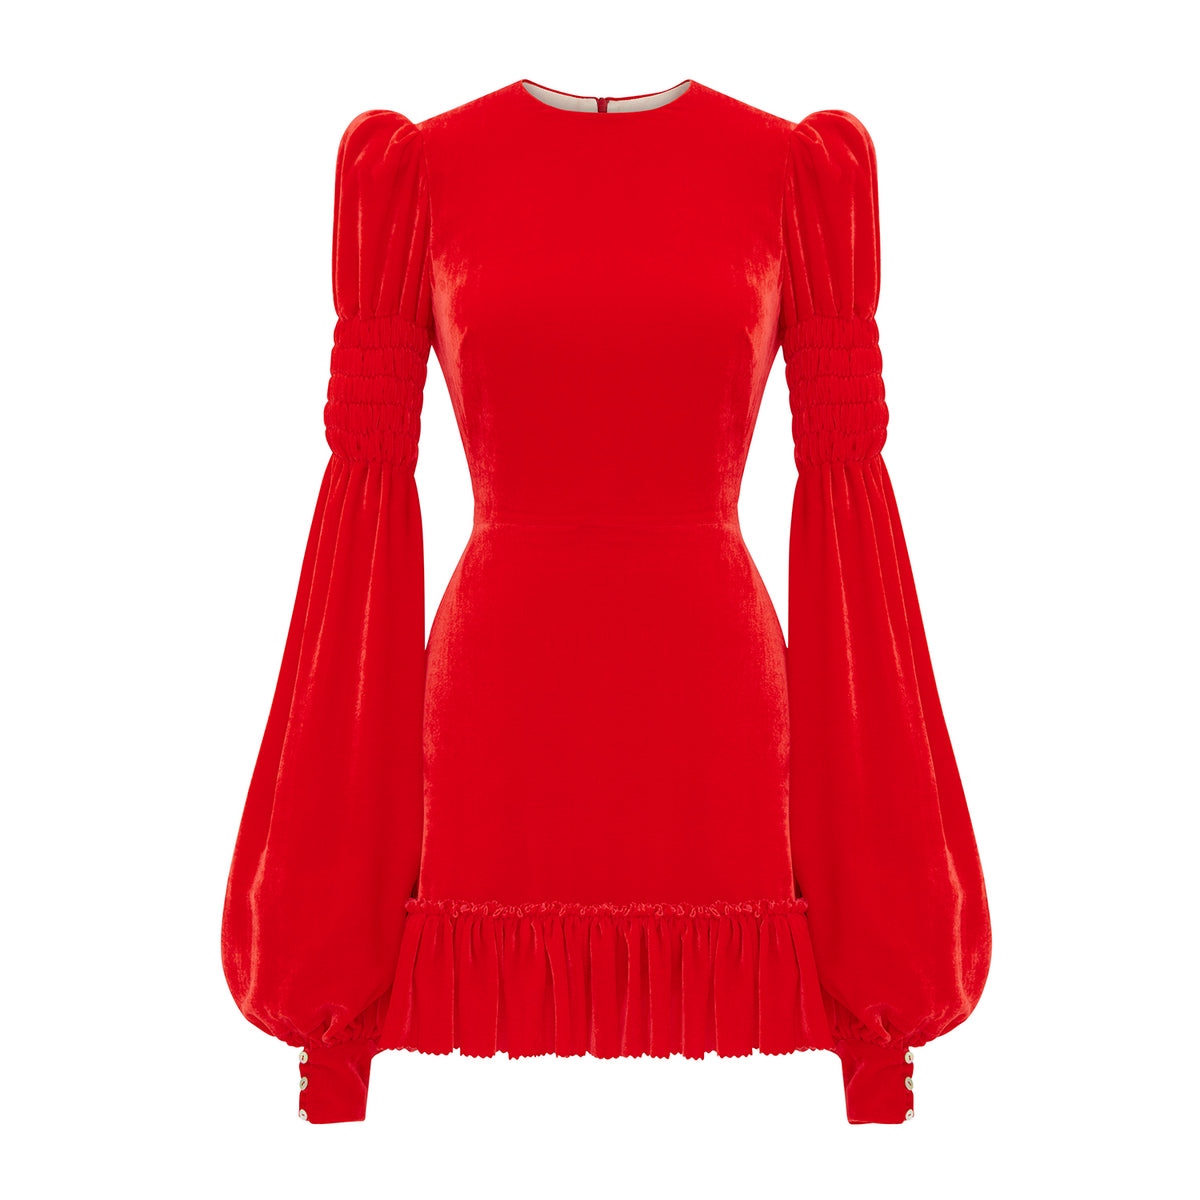 THE VELVET RUNAWAY DRESS